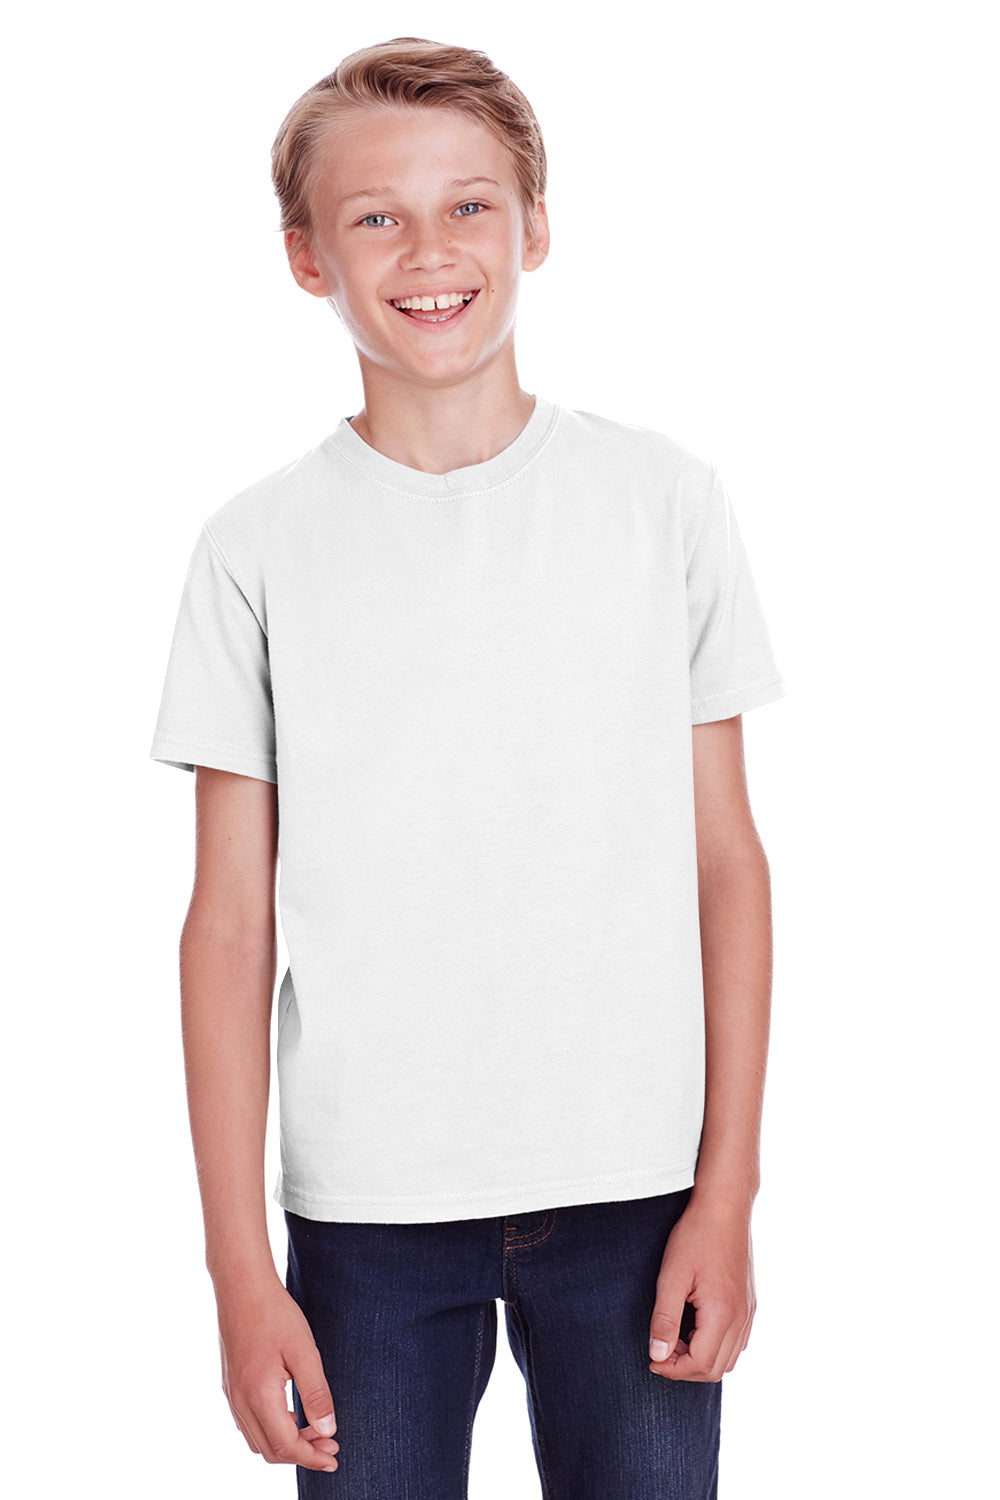 ComfortWash by Hanes GDH175 Youth Short Sleeve Crewneck T-Shirt White Front